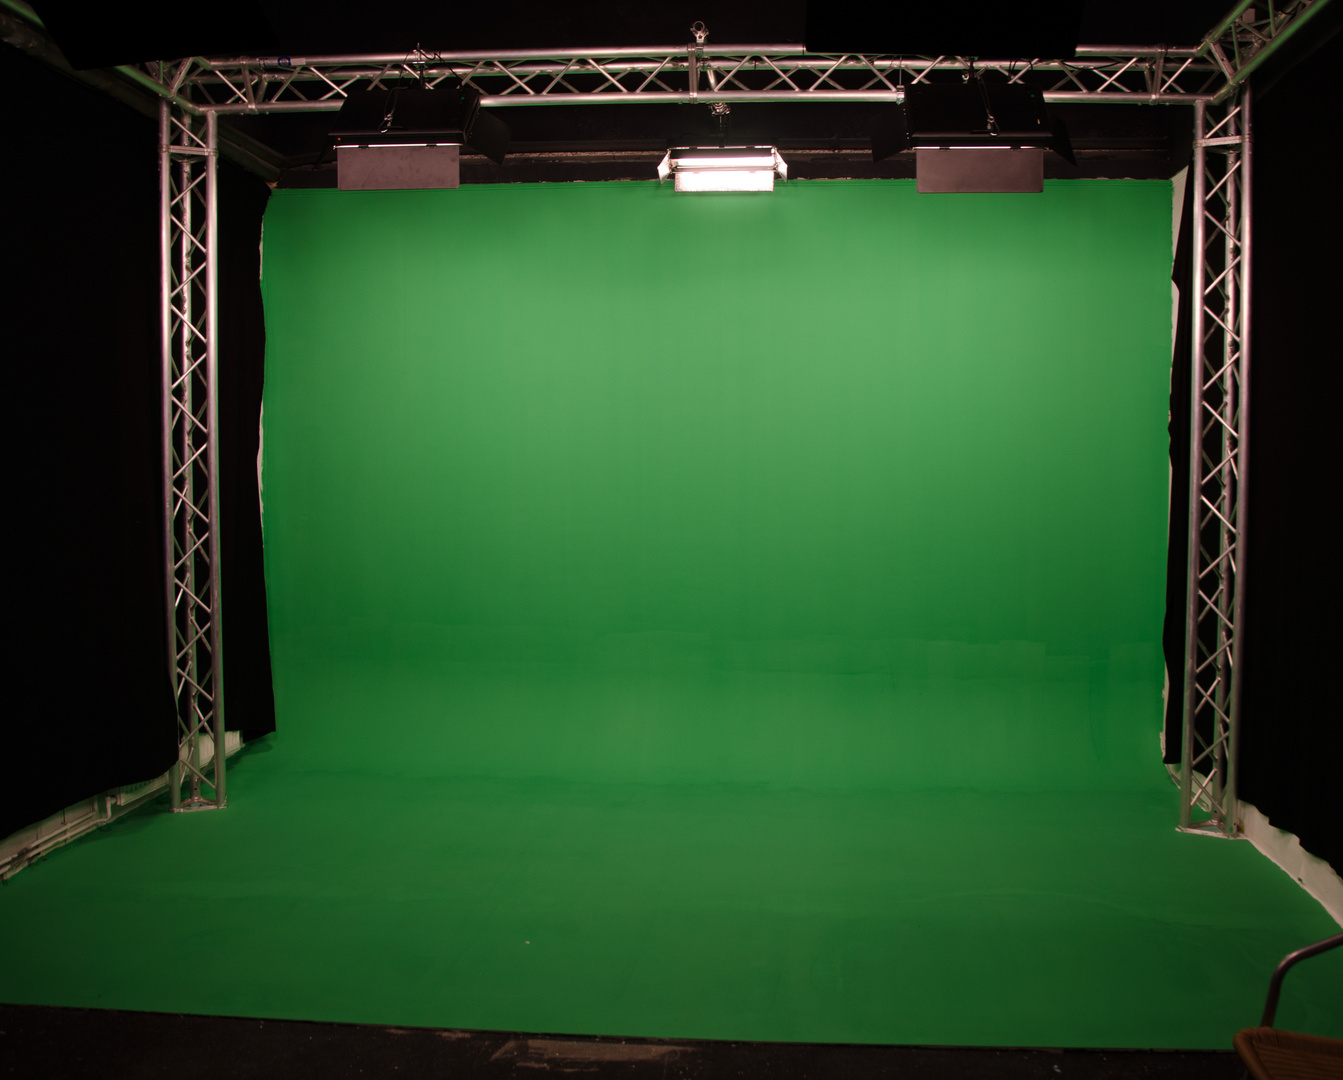 Greenscreen-Hohlkehle (4,90 x 3,50 m)